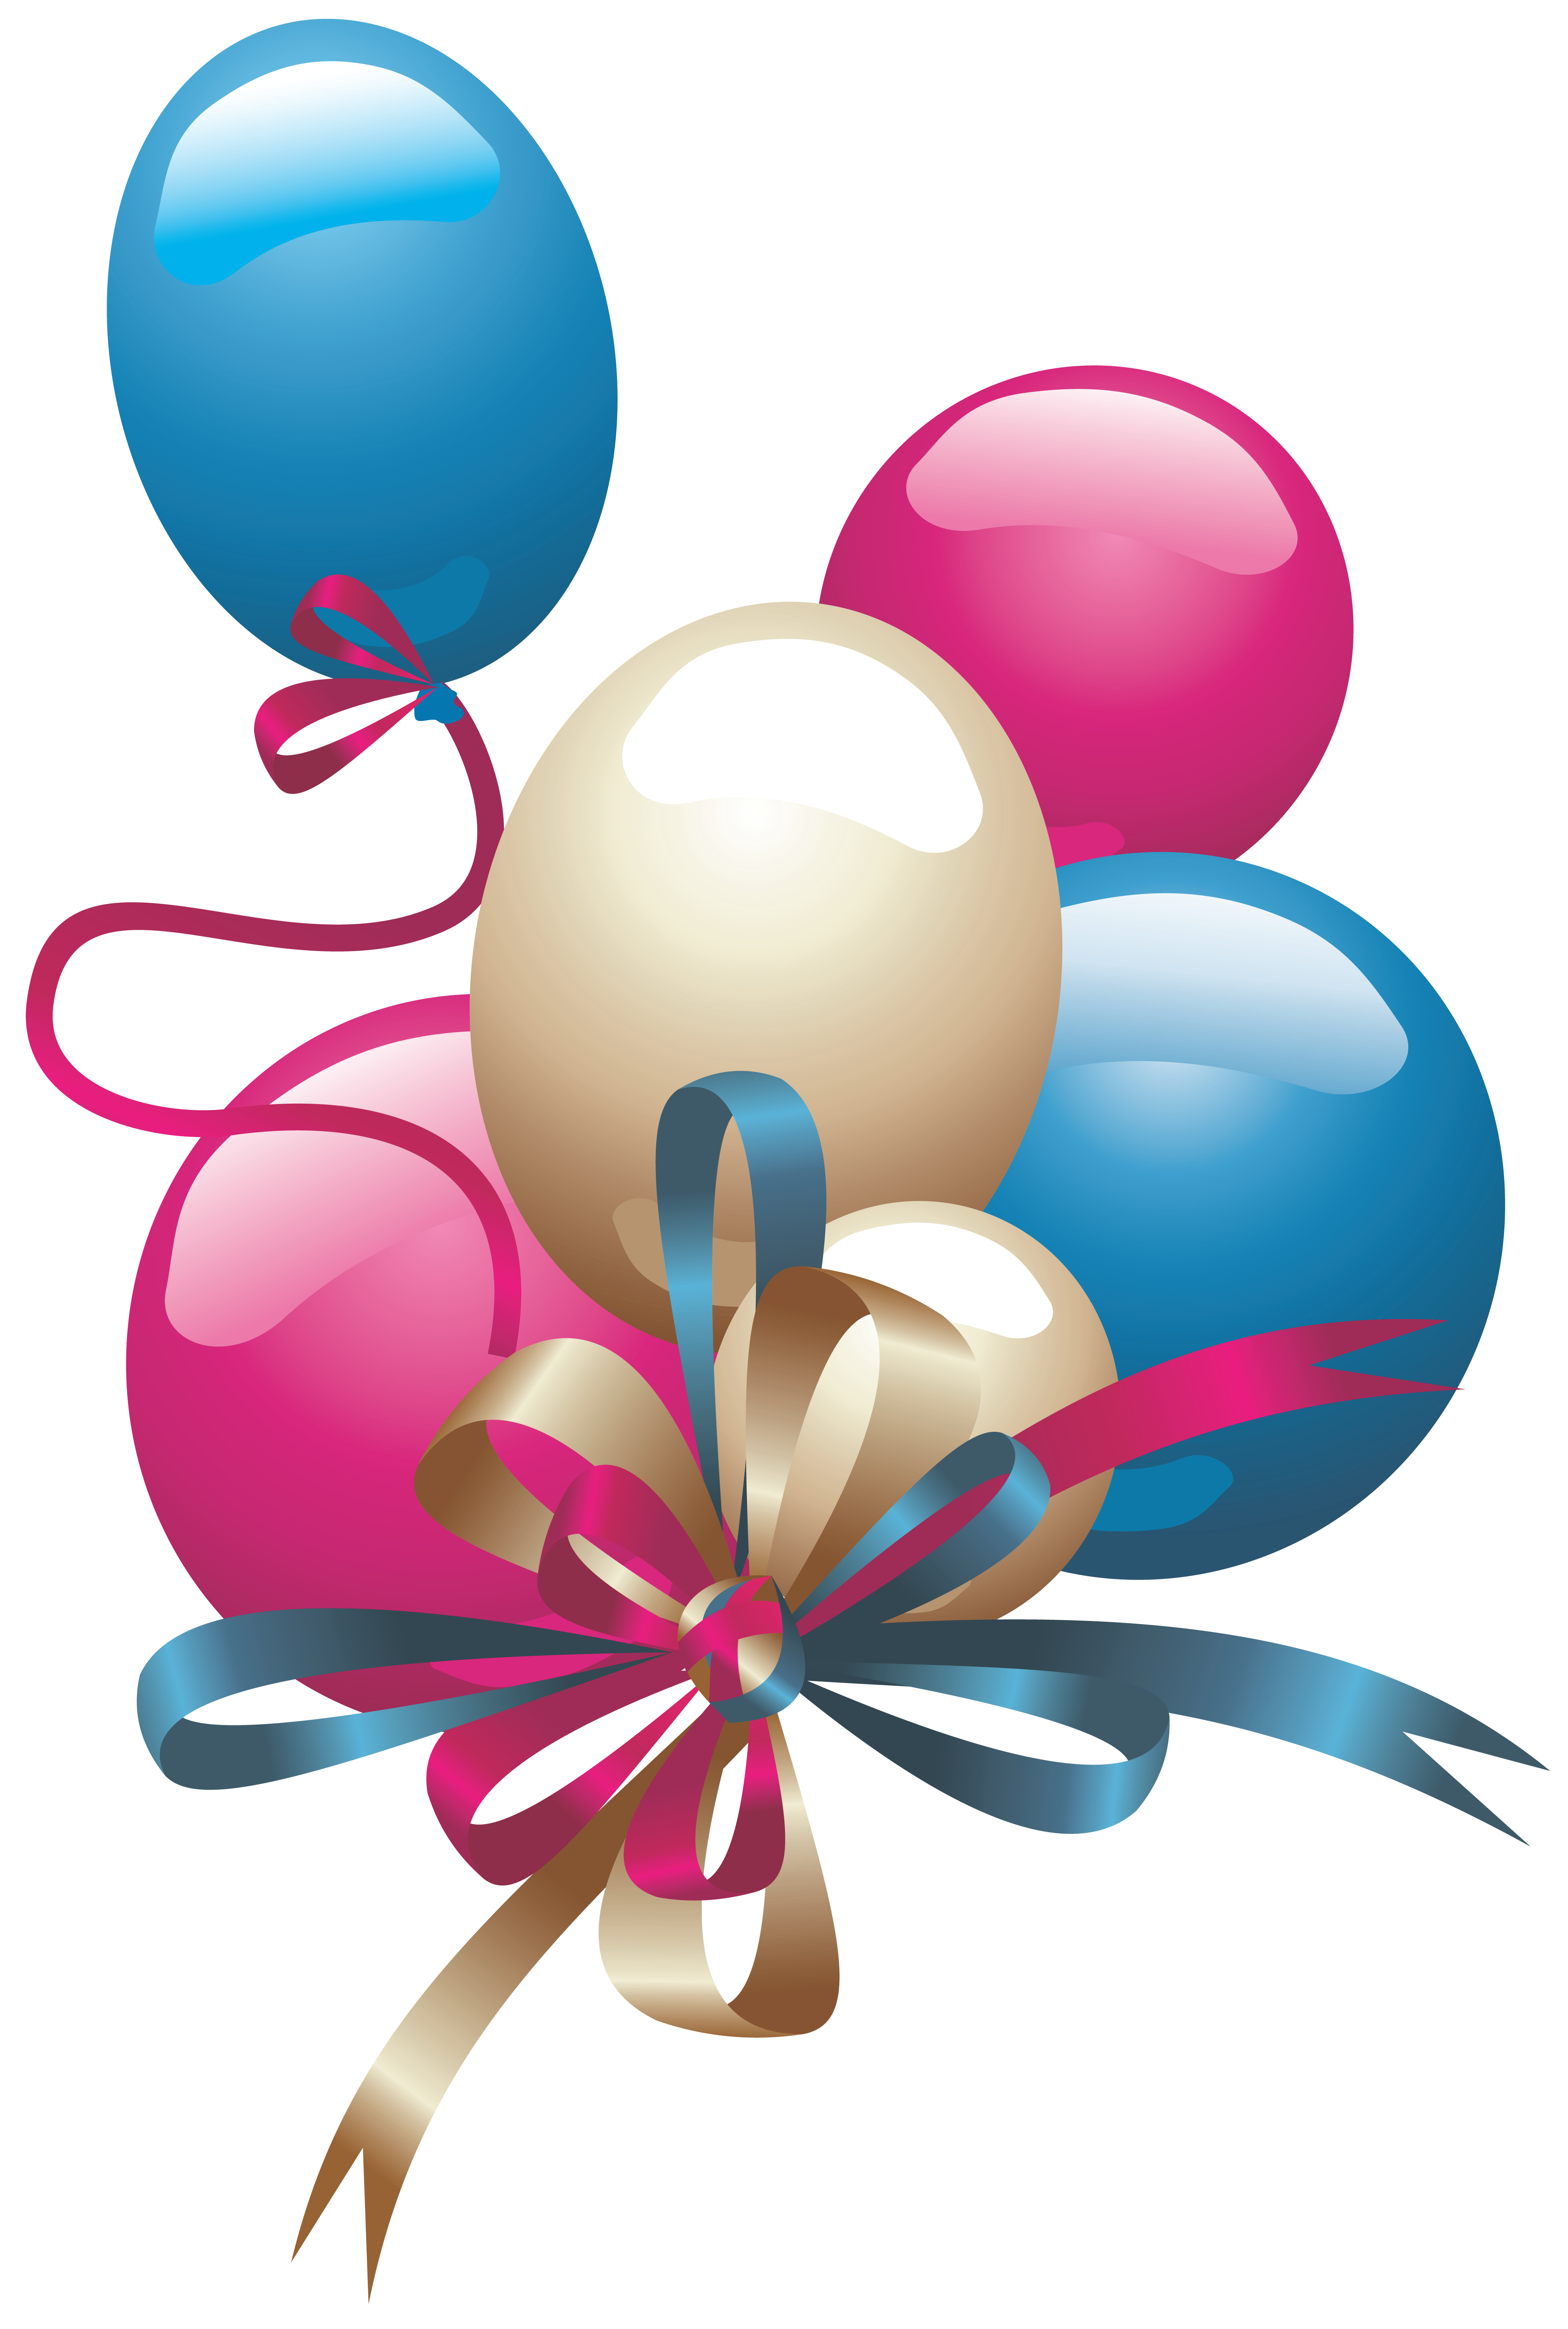 Clipart zum geburtstag svg royalty free library Balloons PNG Clipart | Childs Birthday/Birth | Pinterest svg royalty free library